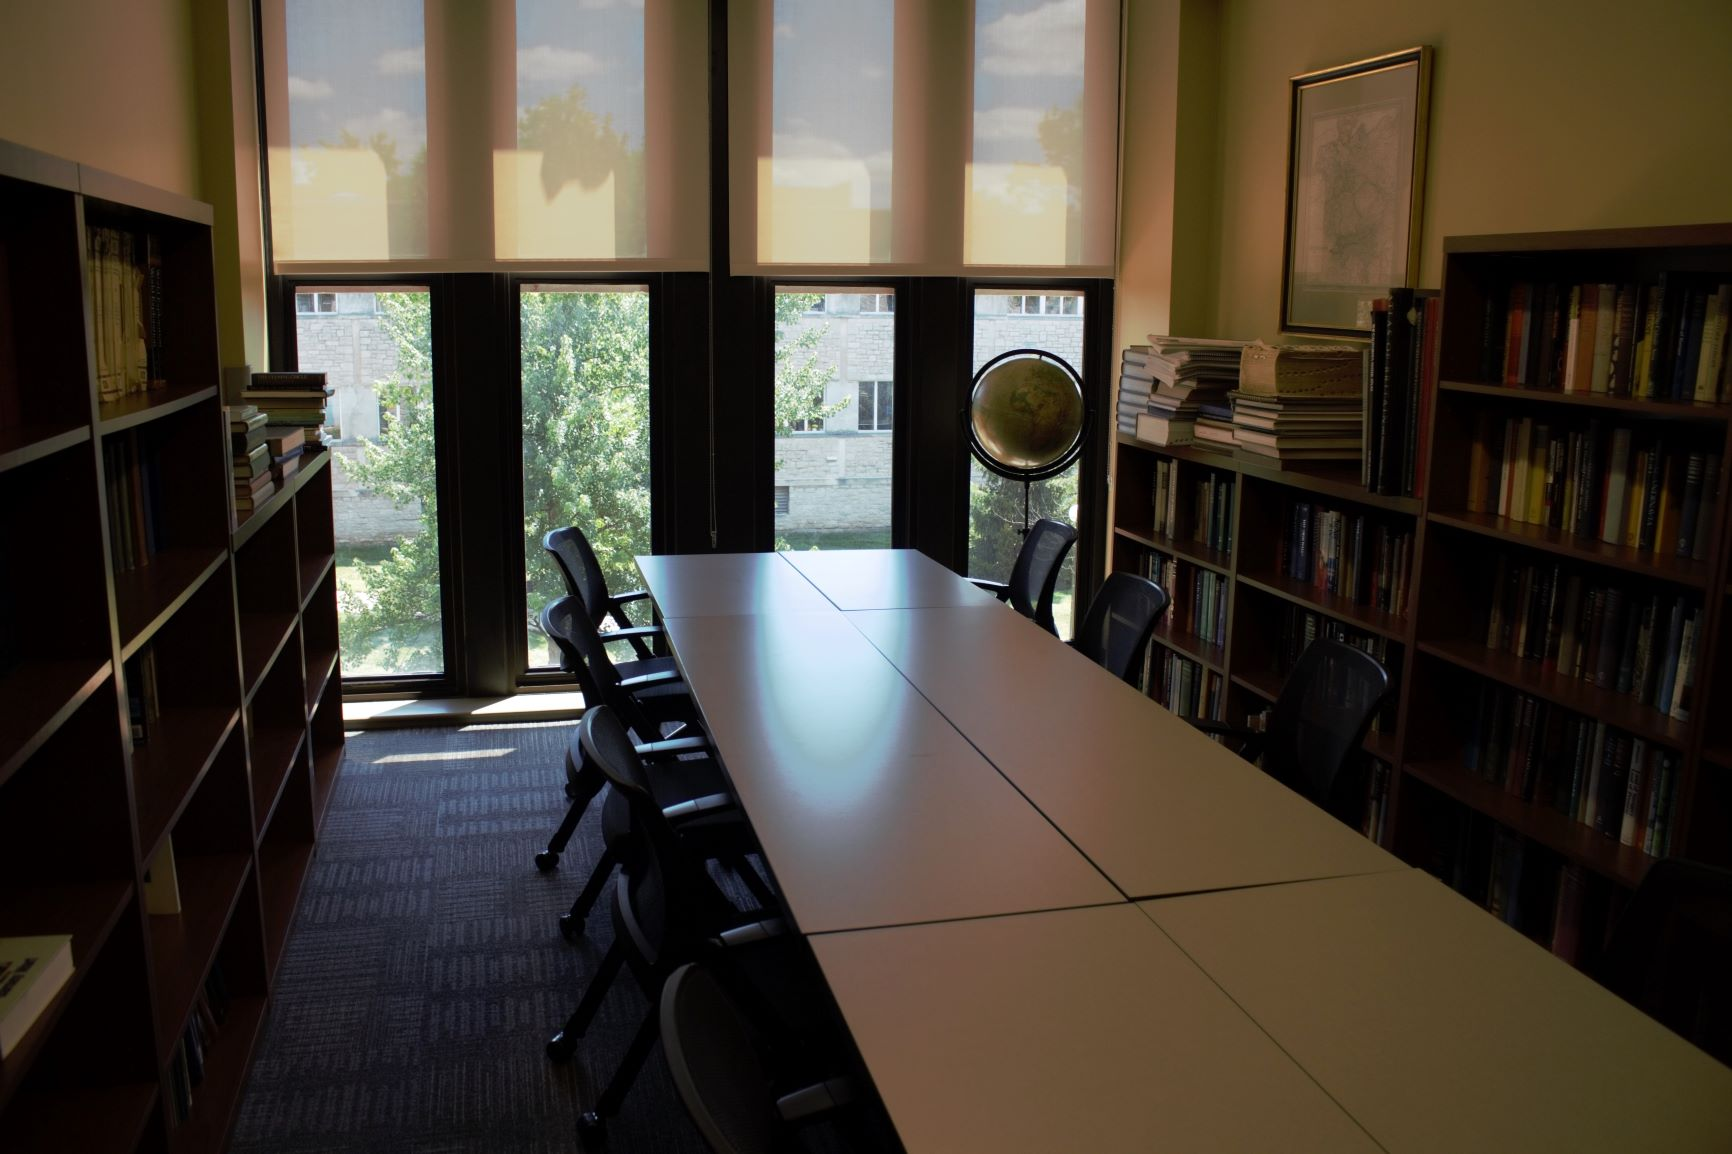 Geography Library: The library holds a large collection of classic and contemporary geographic texts going back more than 100 years. Quiet, comfortable, and cozy, with big windows and lots of natural light, it's the perfect place to find your geo-zen.